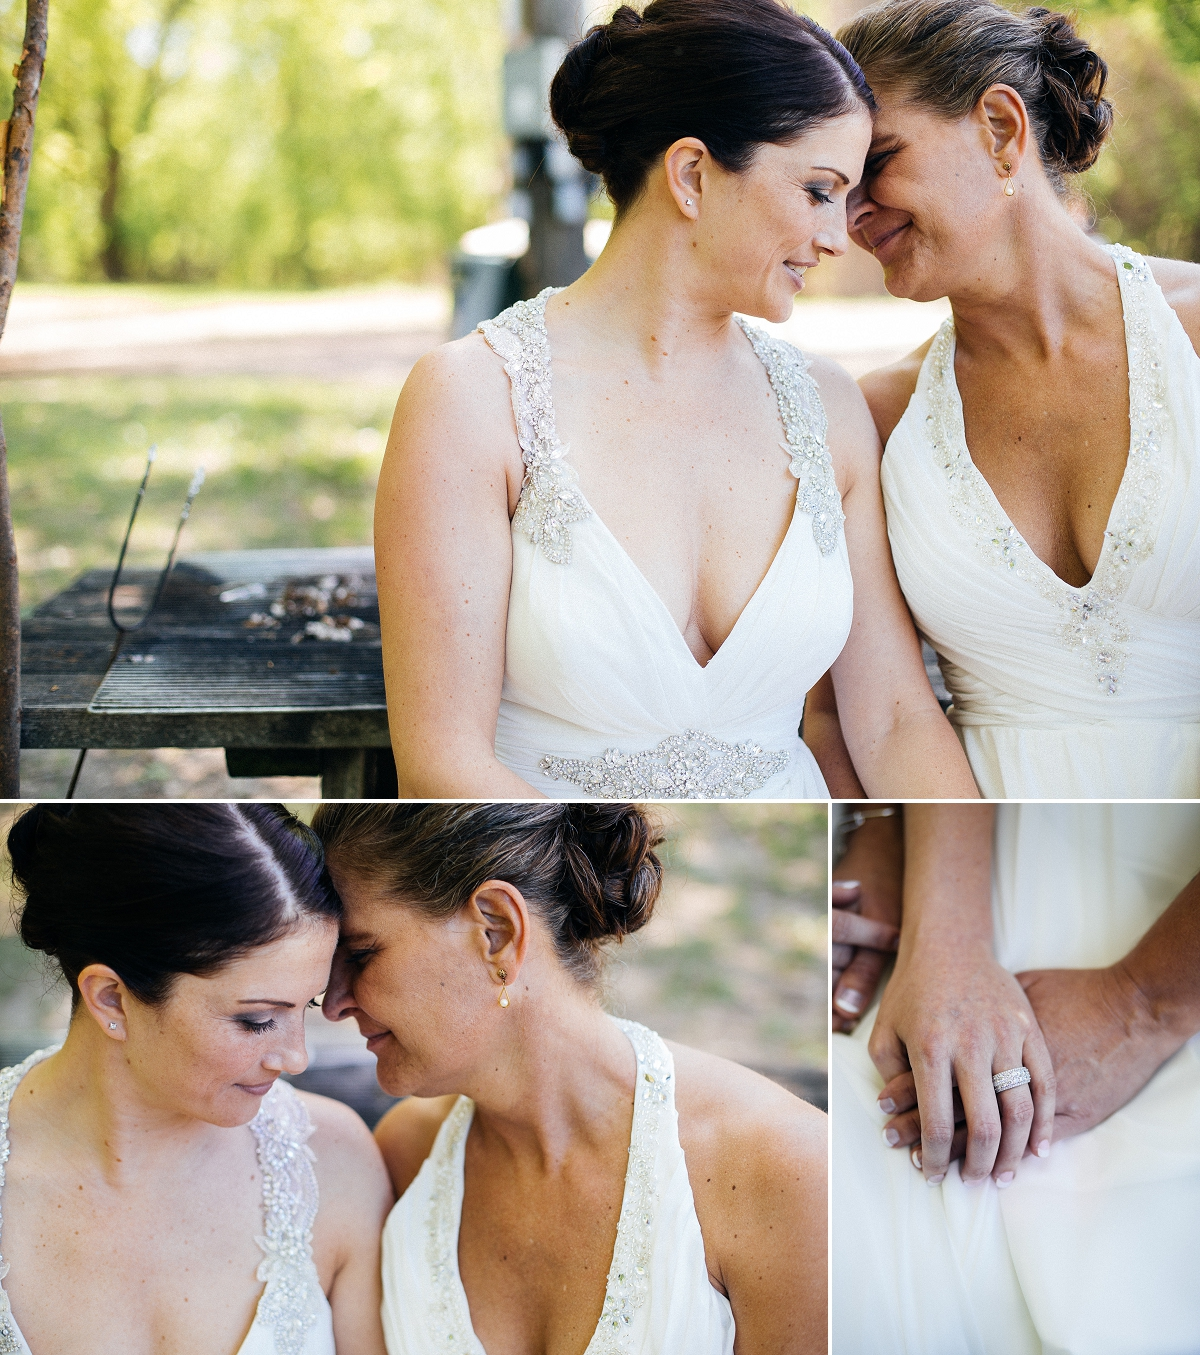 Beth and Gina Shakopee Wedding Photography 7